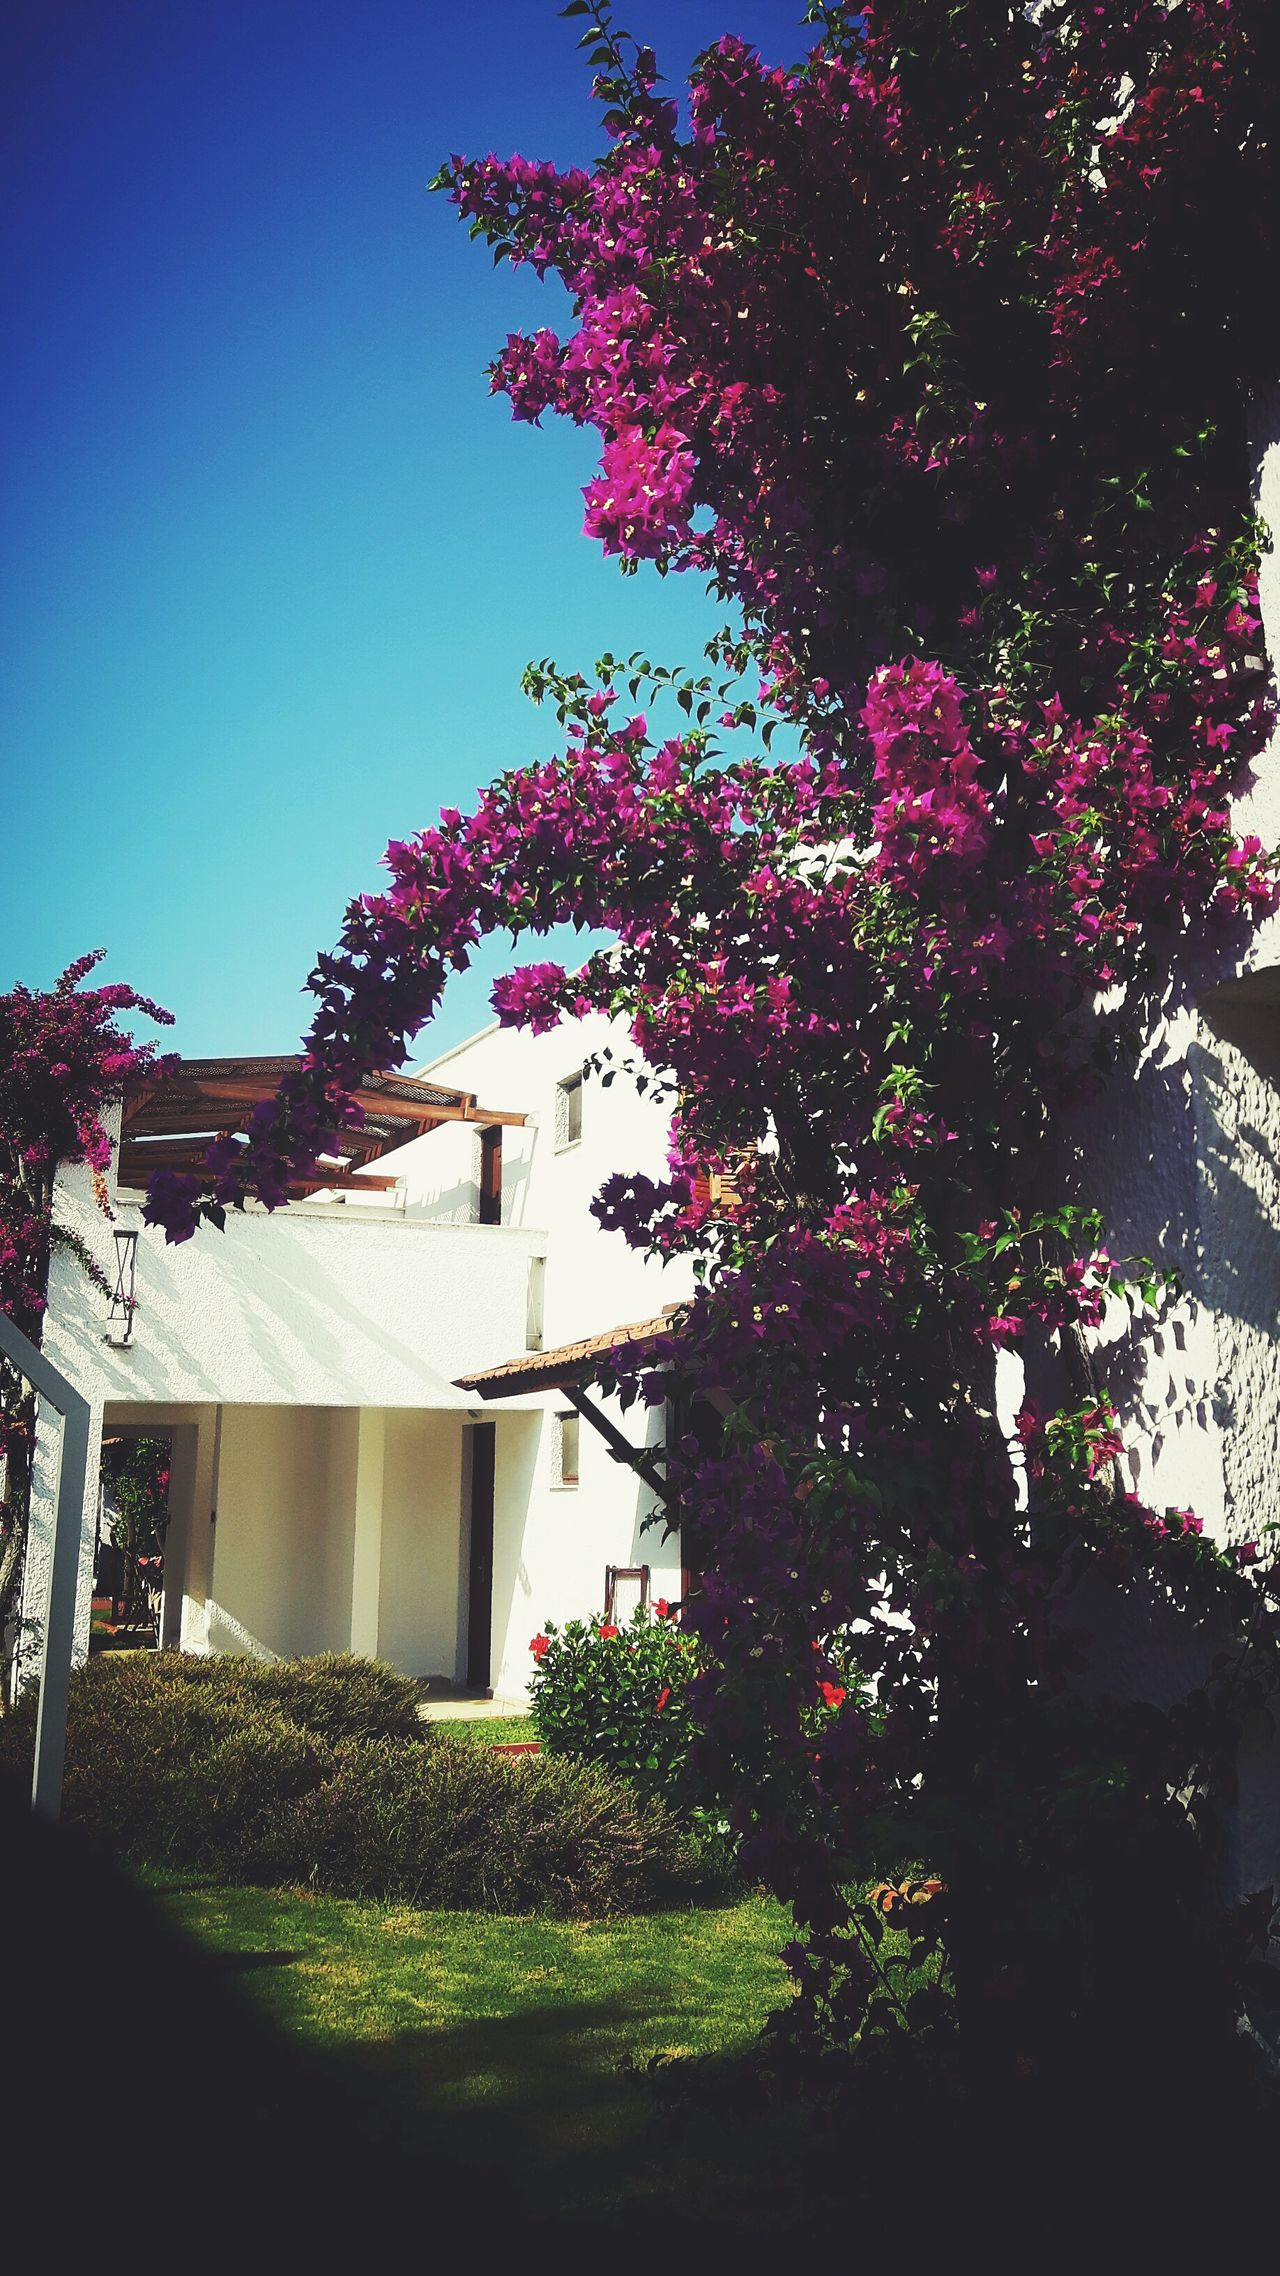 Architecture Built Structure Building Exterior Tree Day No People Outdoors Sky Nature Kastalia Photographer EyeEm Selects Photography Nature Summer Views Relax Holiday Summertime Summervibes Summer Tourist Resort Nature Photography Purple Purple Flower Pretty